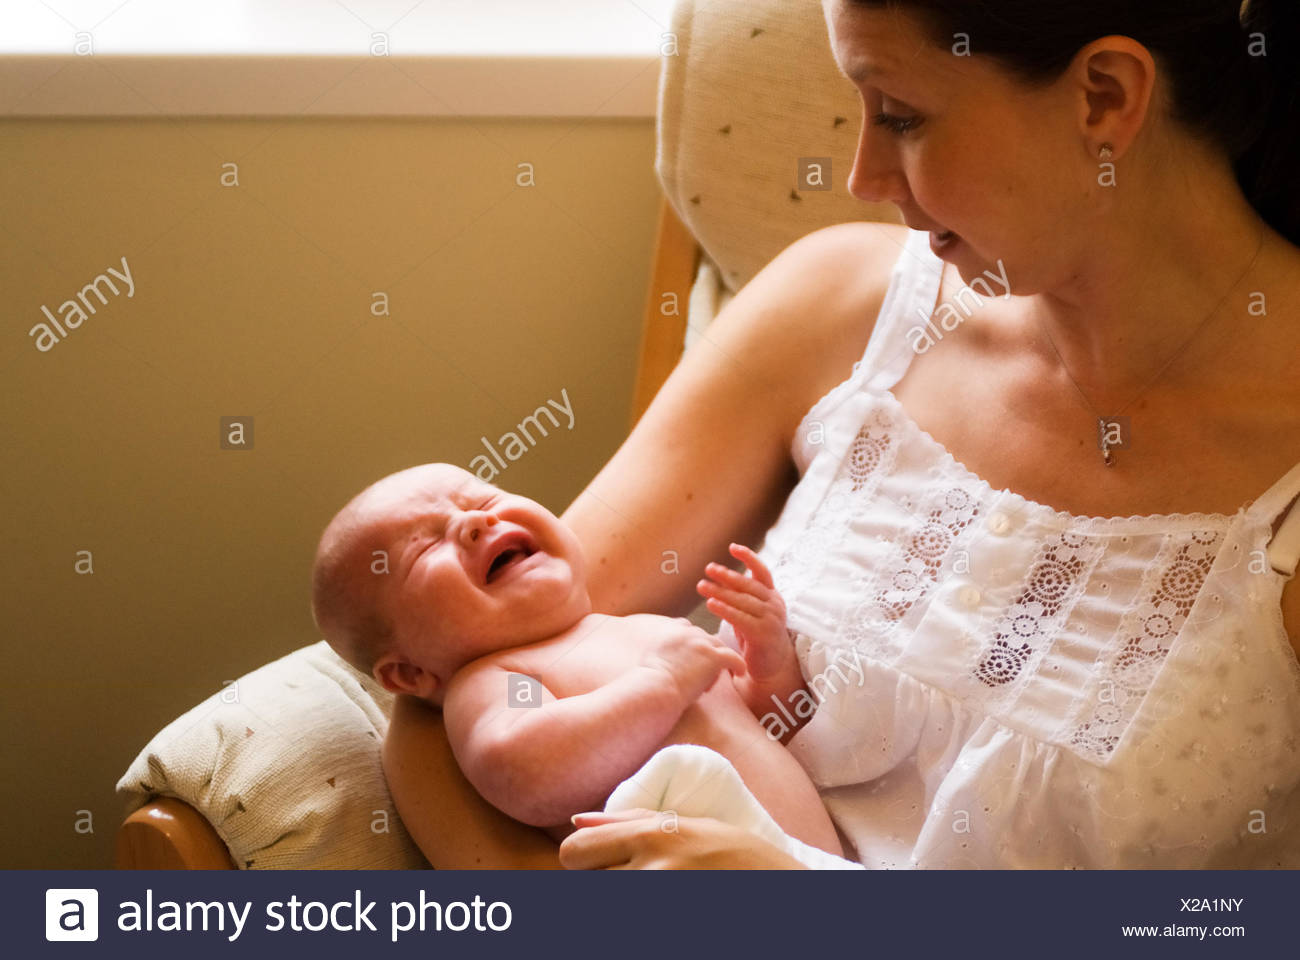 Crying in Mother's Arms - Stock Image